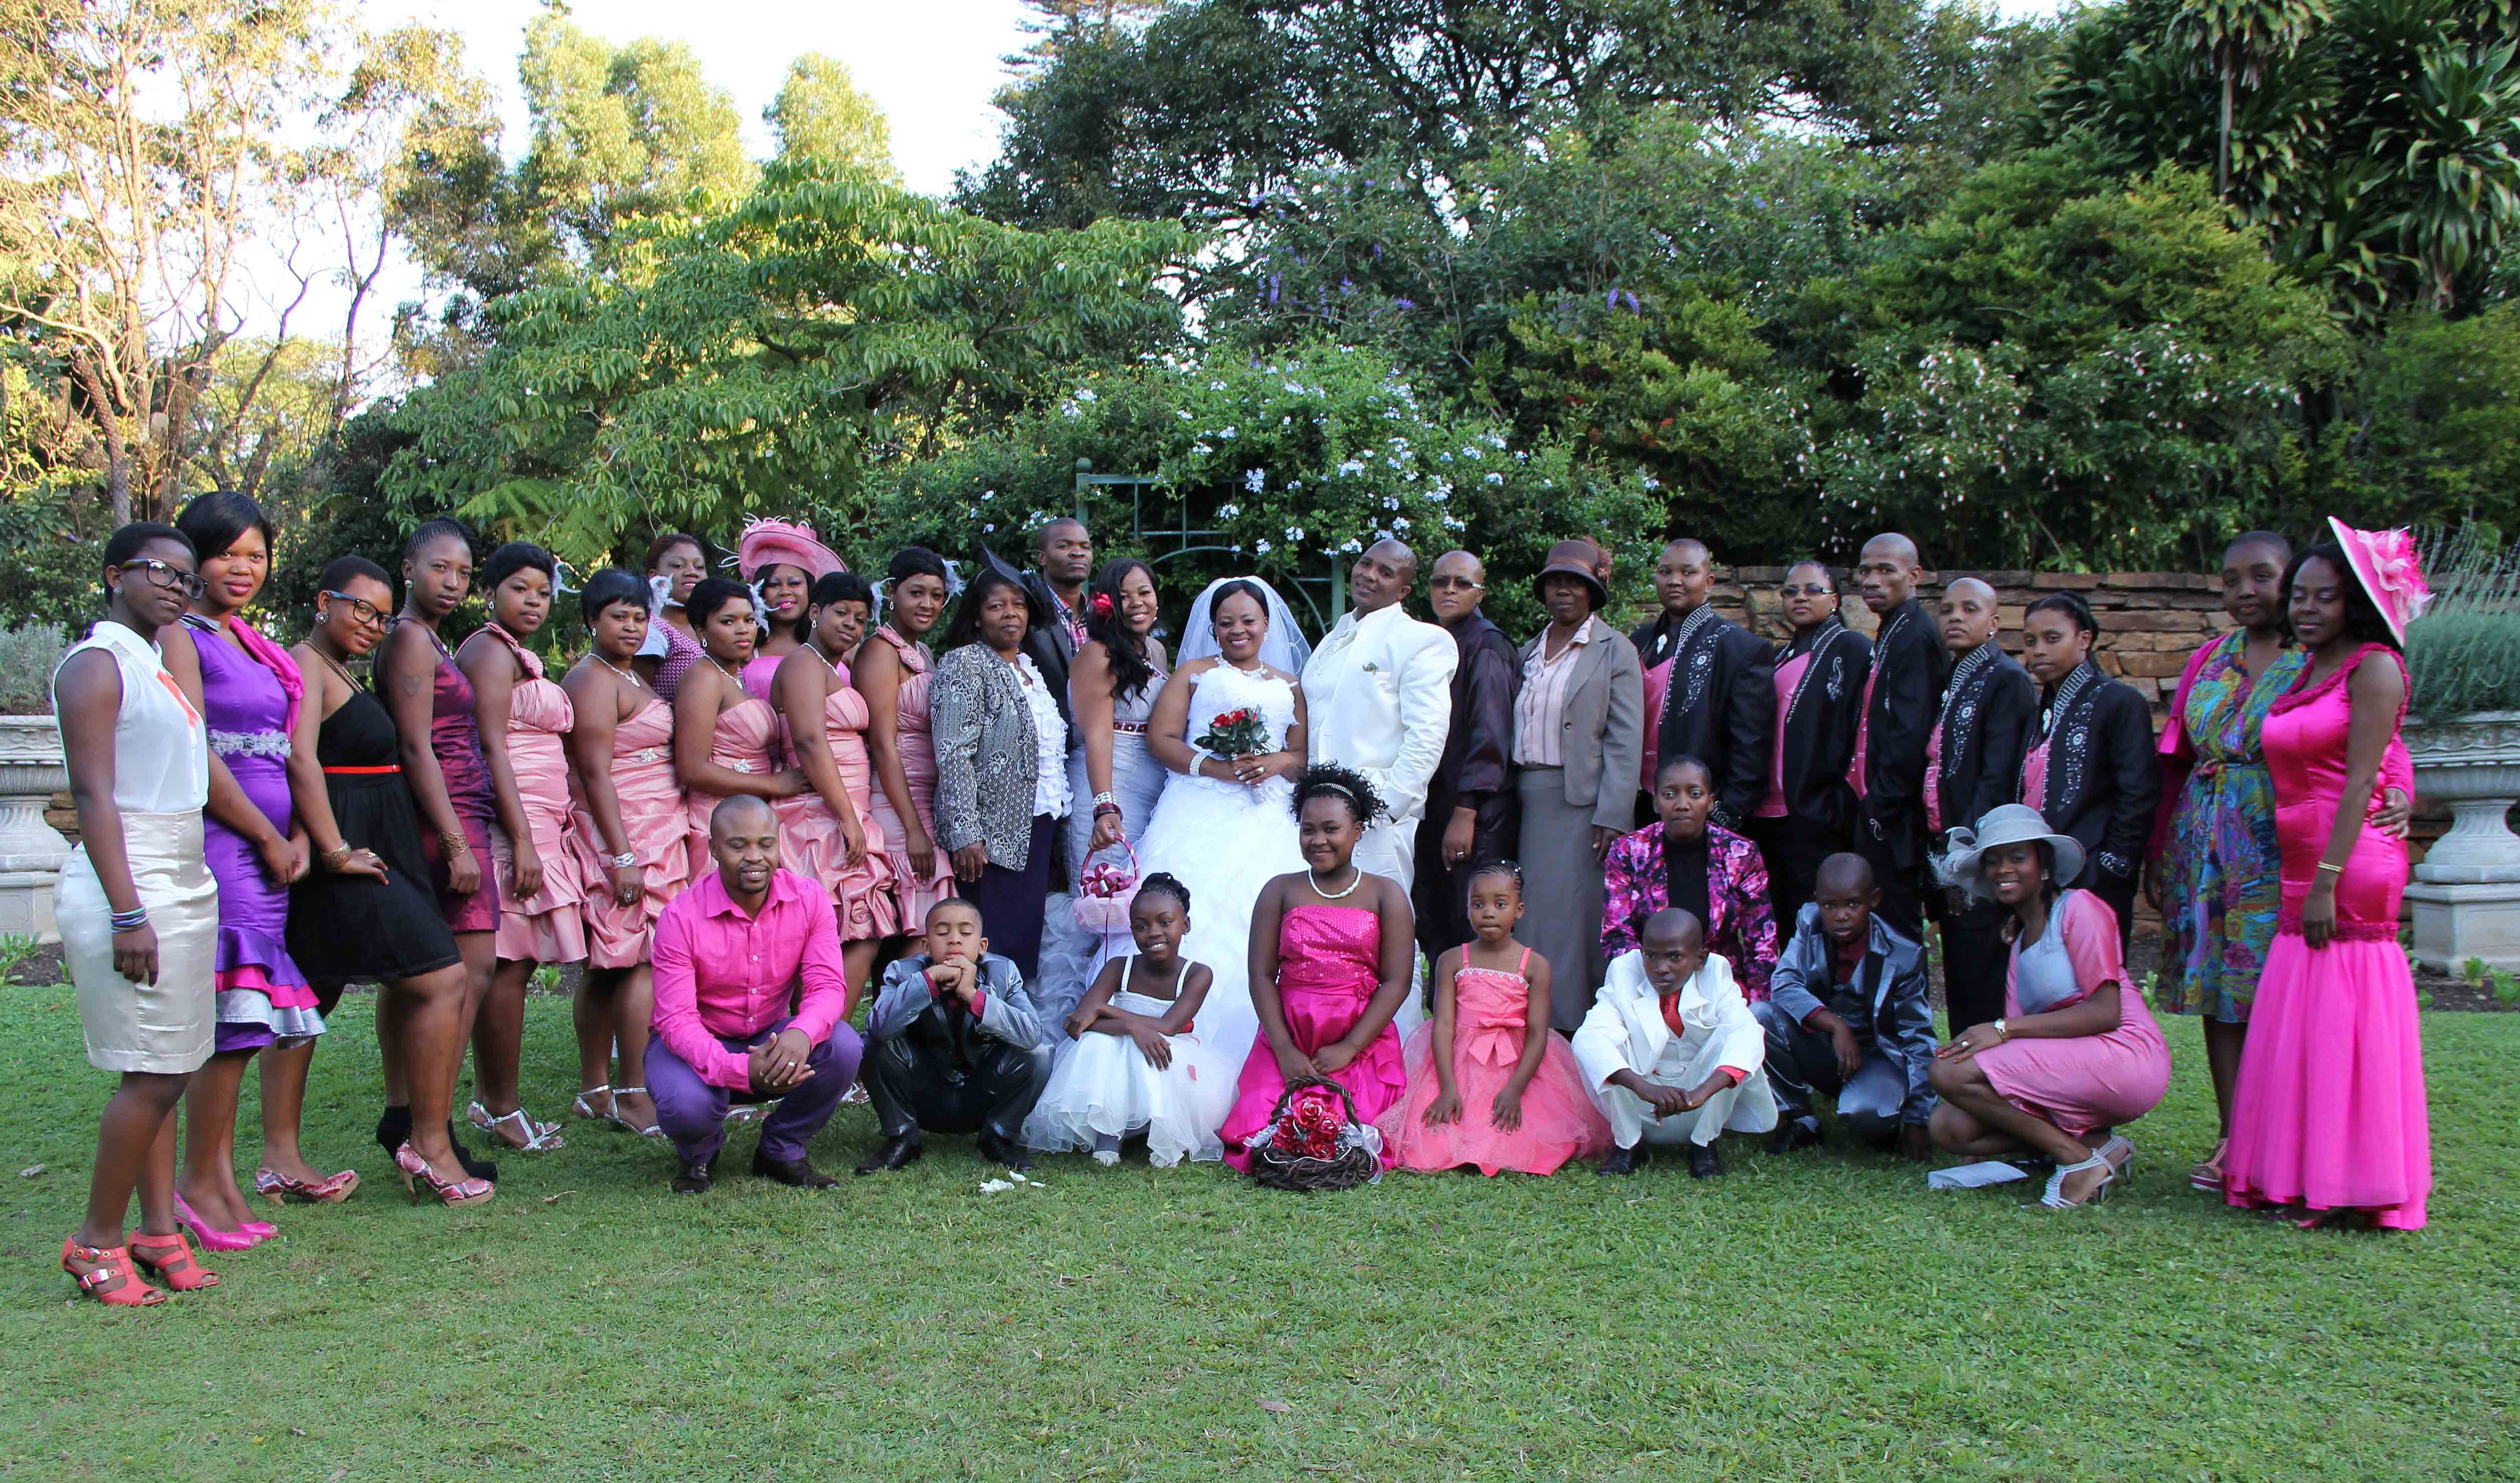 2013 June 15 The Durban Lesbian Wedding of the Year